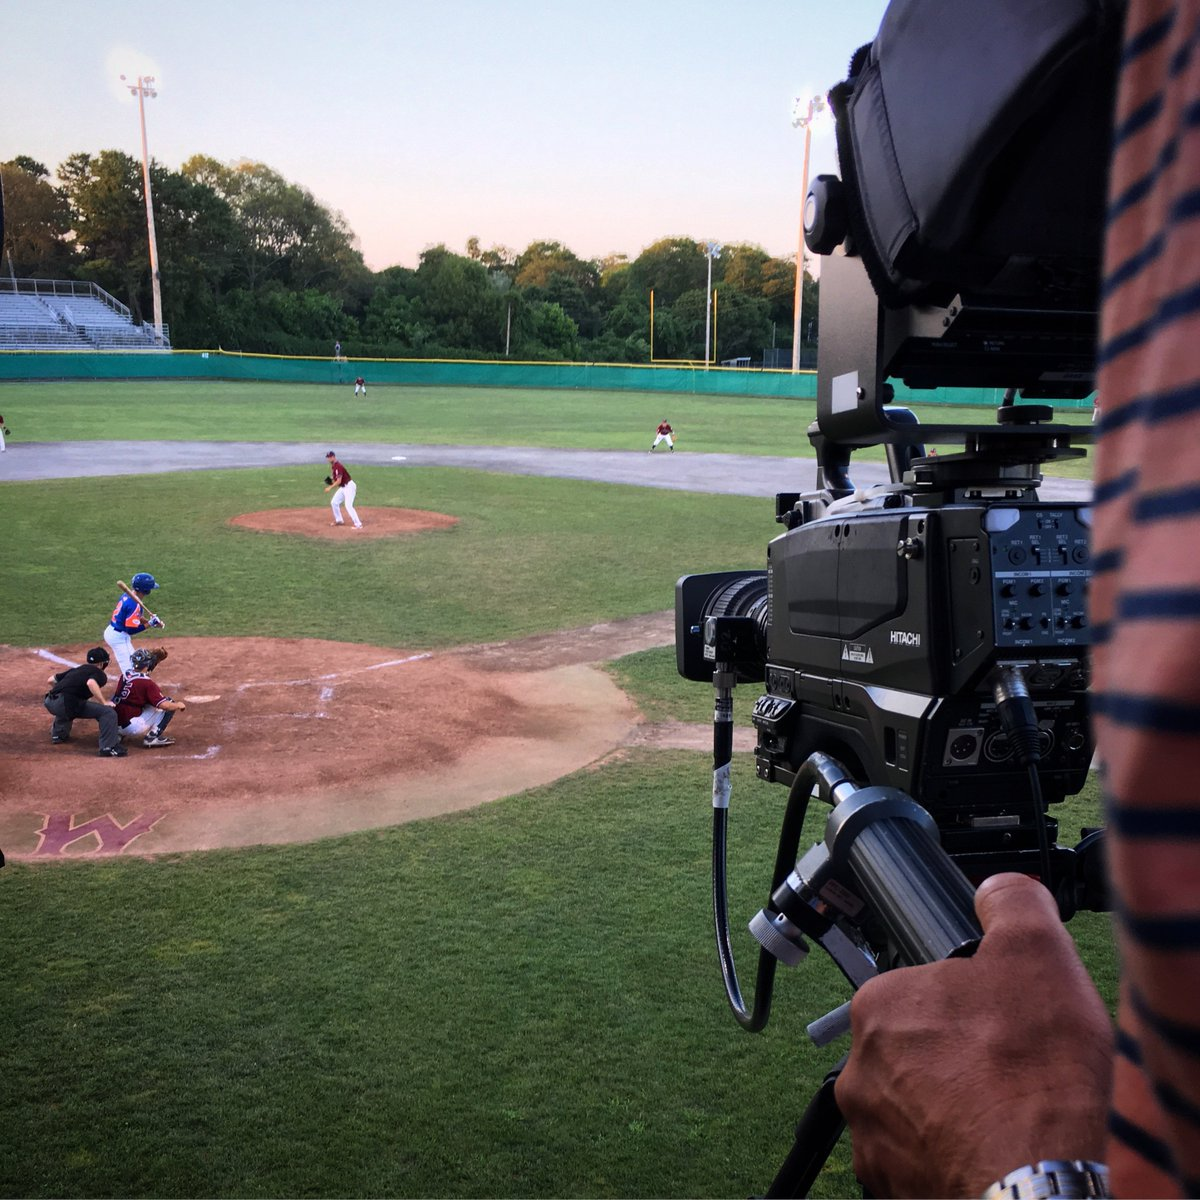 From high home @harborhawks visit @WarehamGatemen - our last show of the season @Official_CCBL on @FoxCollegeSport.